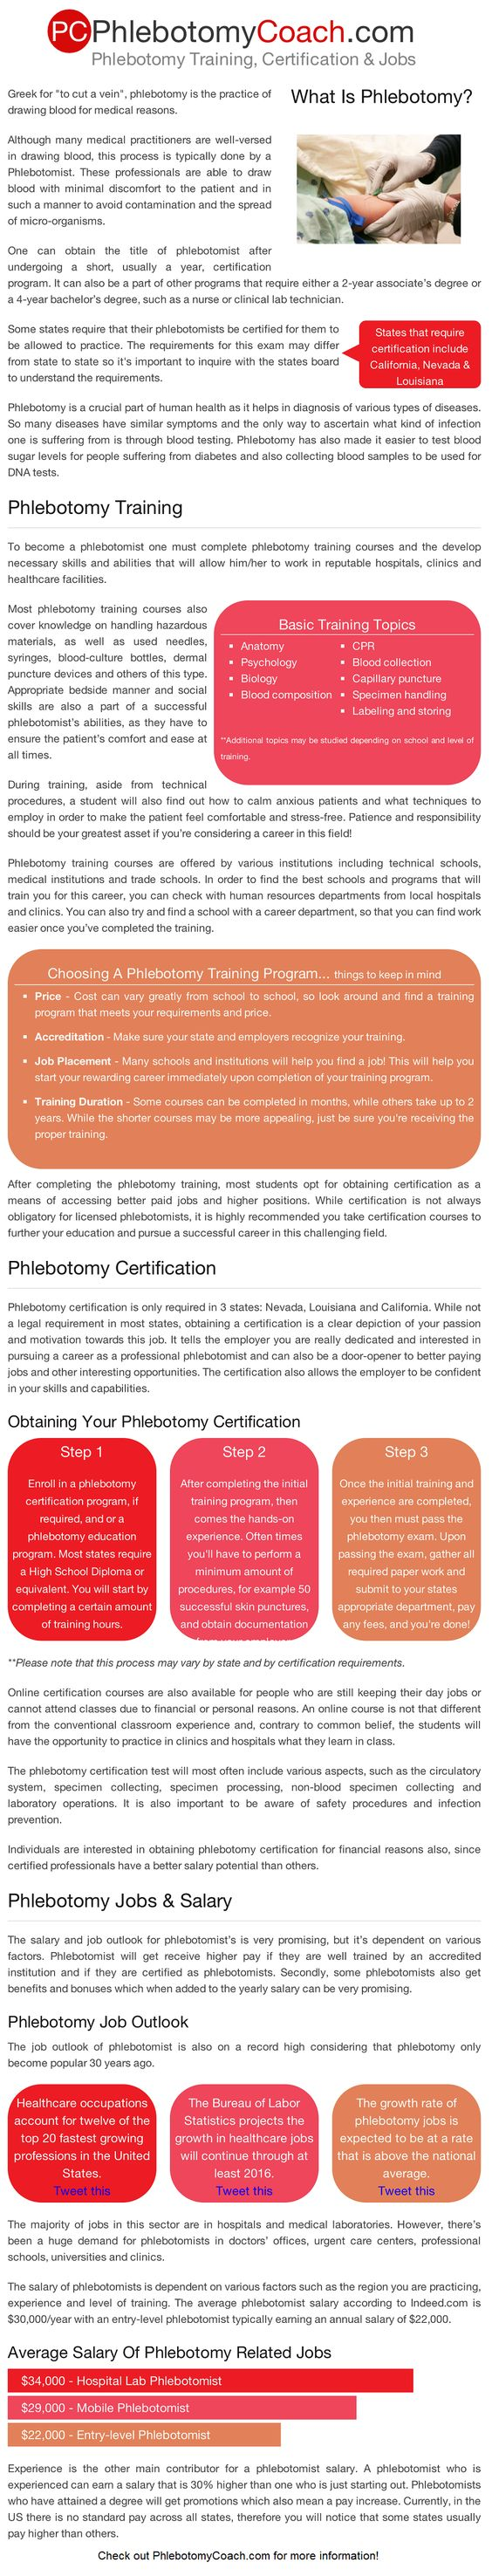 phlebotomy education training resource do you want to become a phlebotomy education training resource do you want to become a phlebotomist here s how